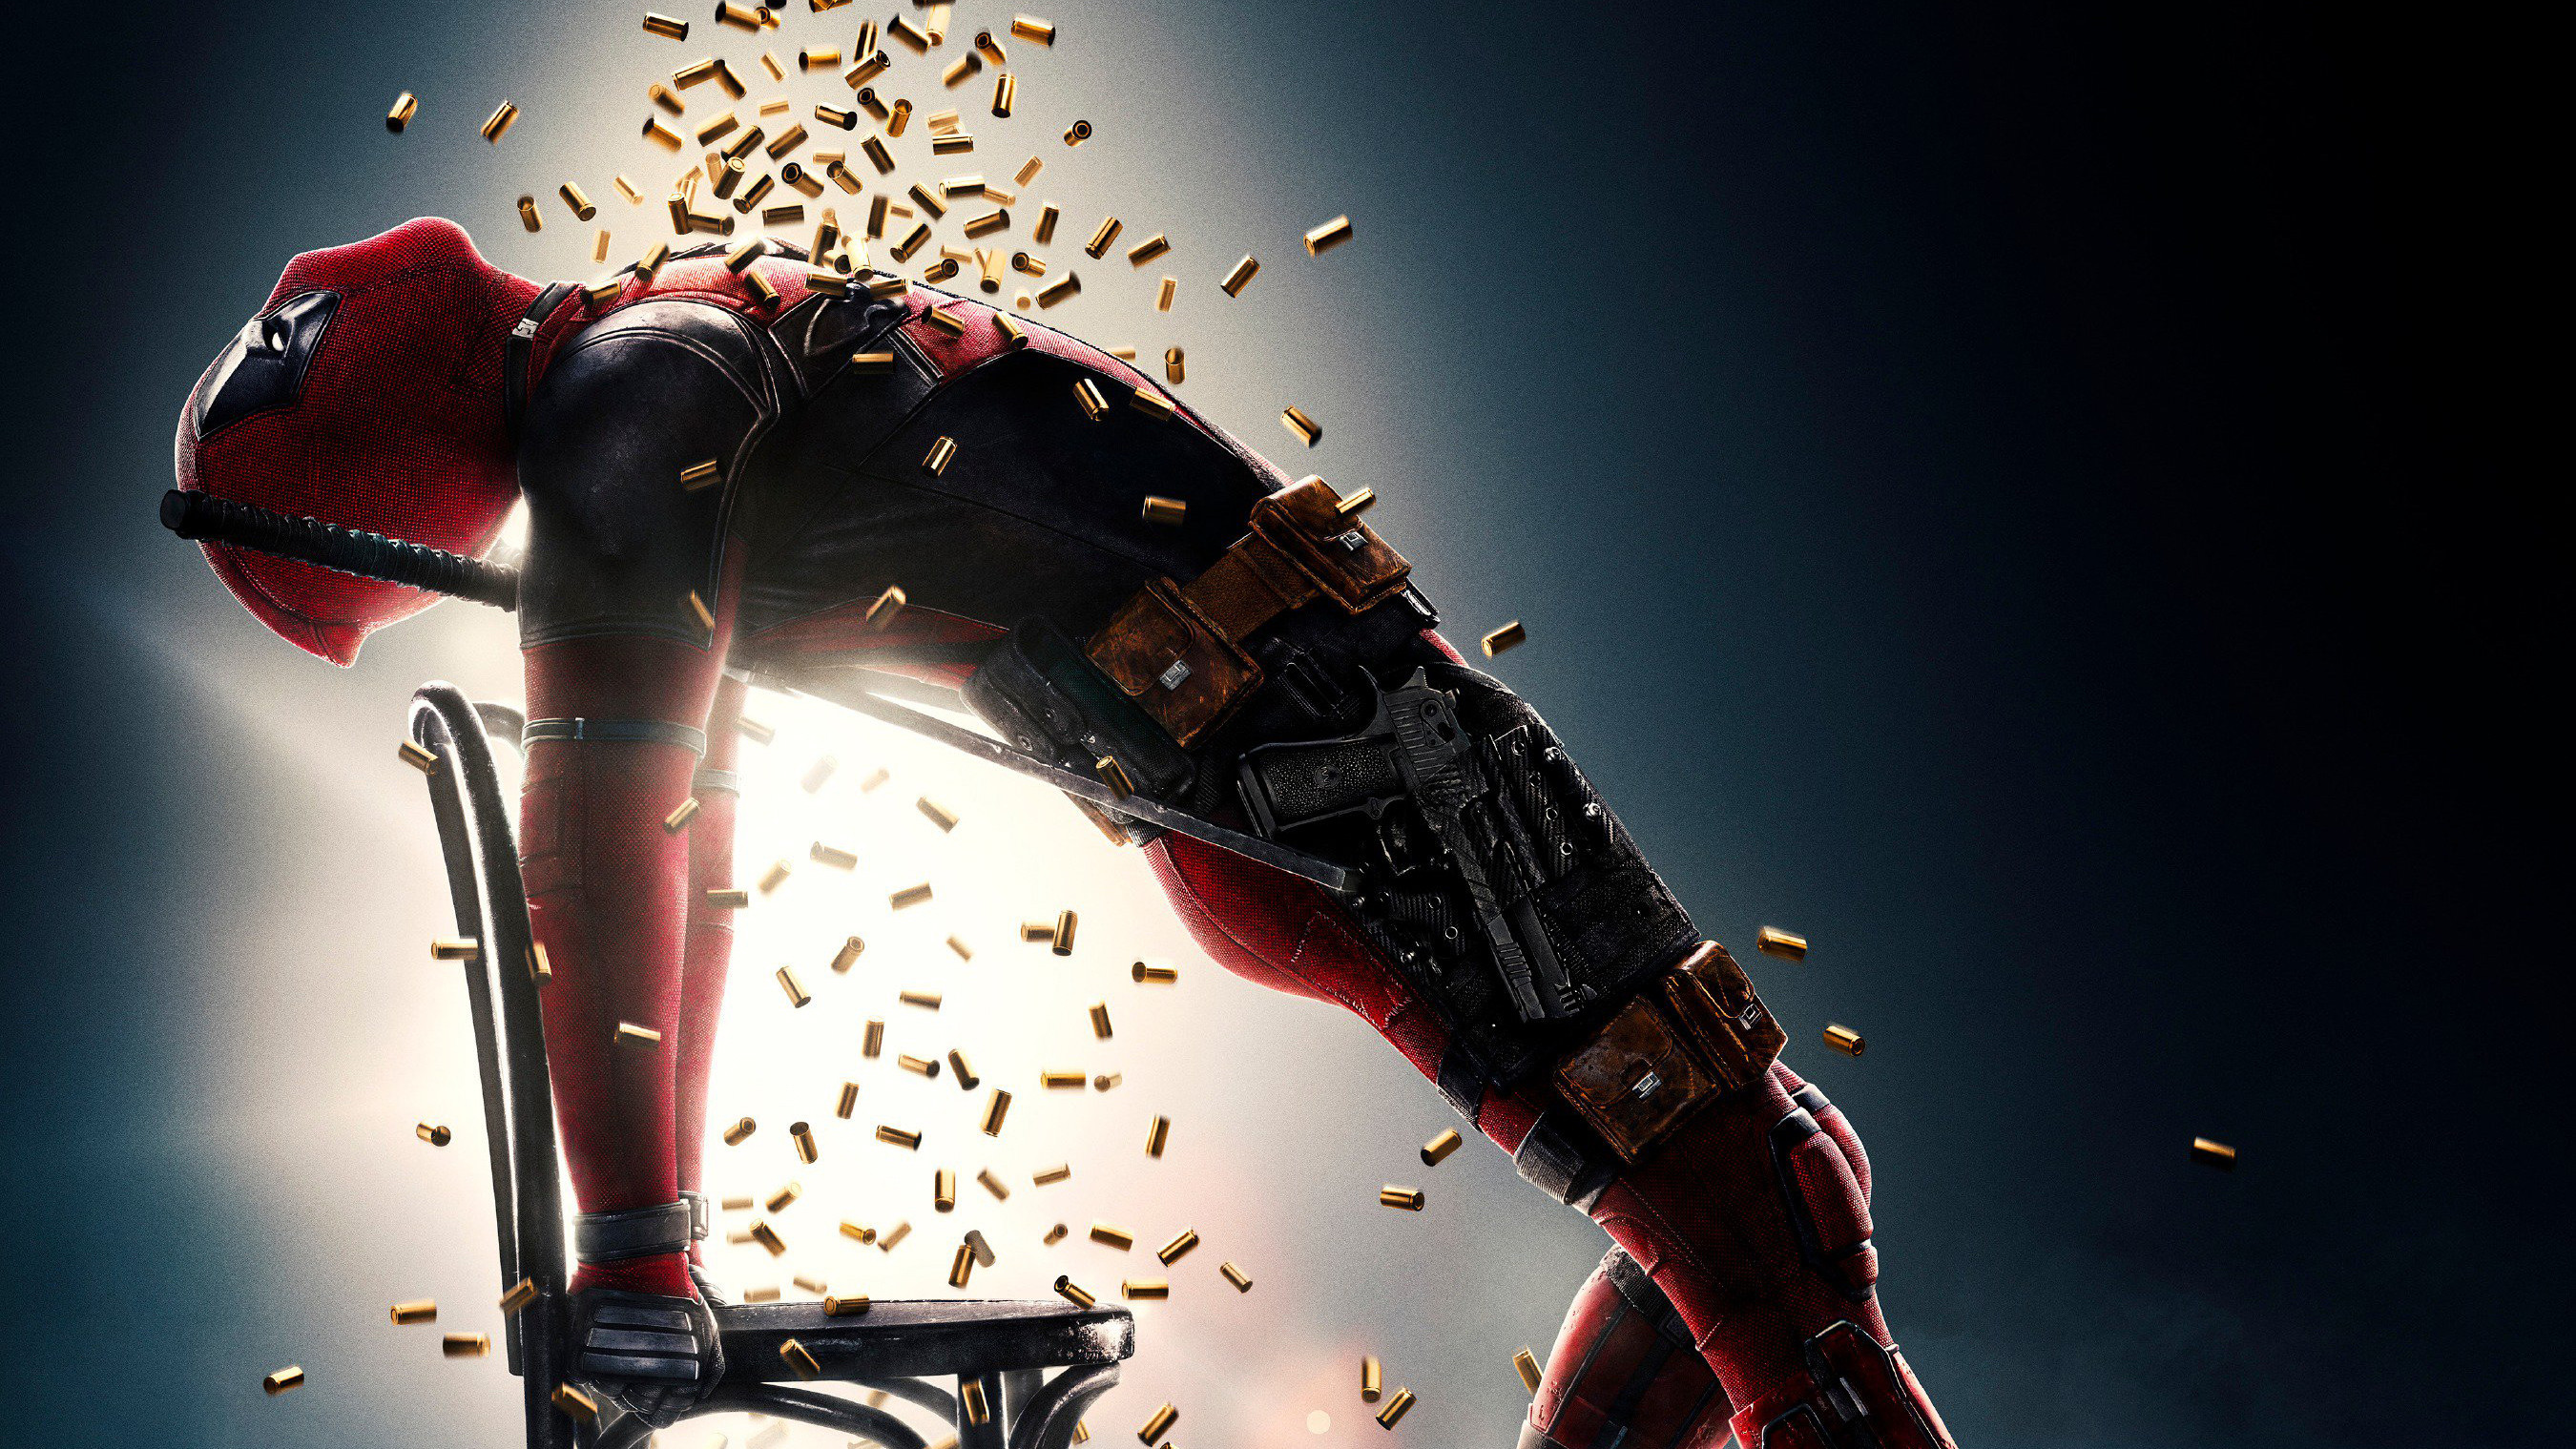 deadpool 2 wallpaper hd